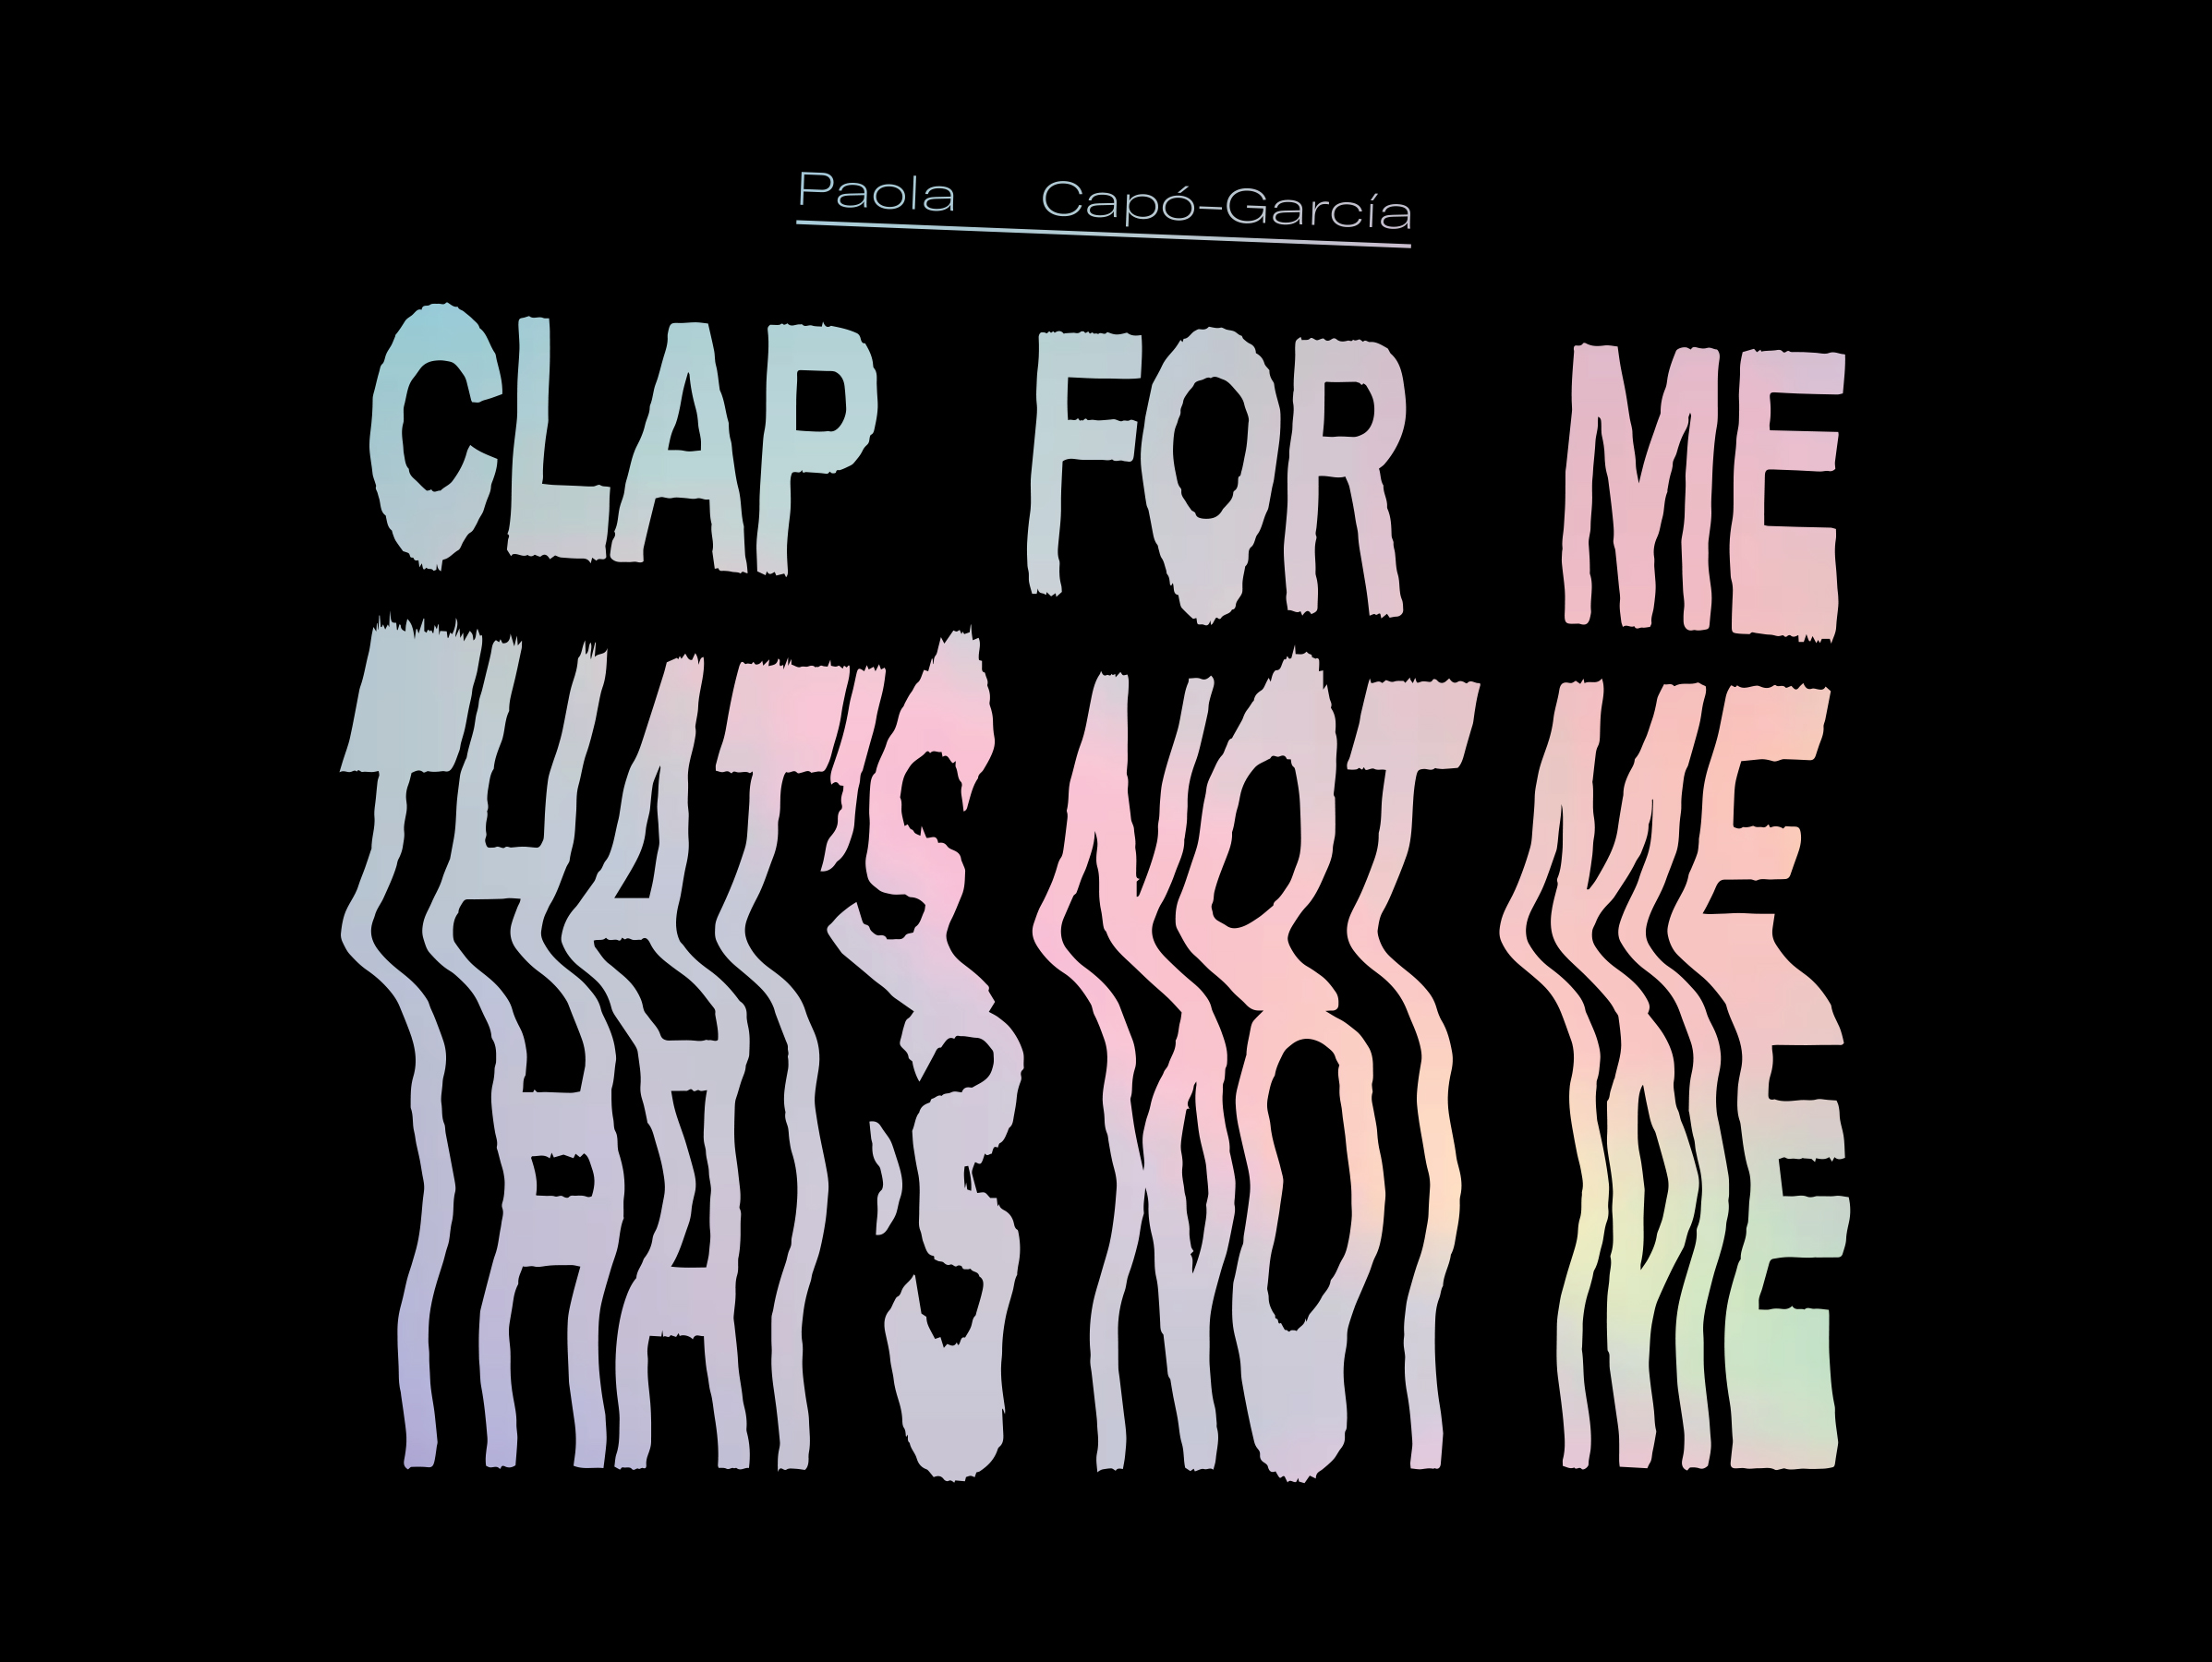 Clap For Me Front Cover.jpg